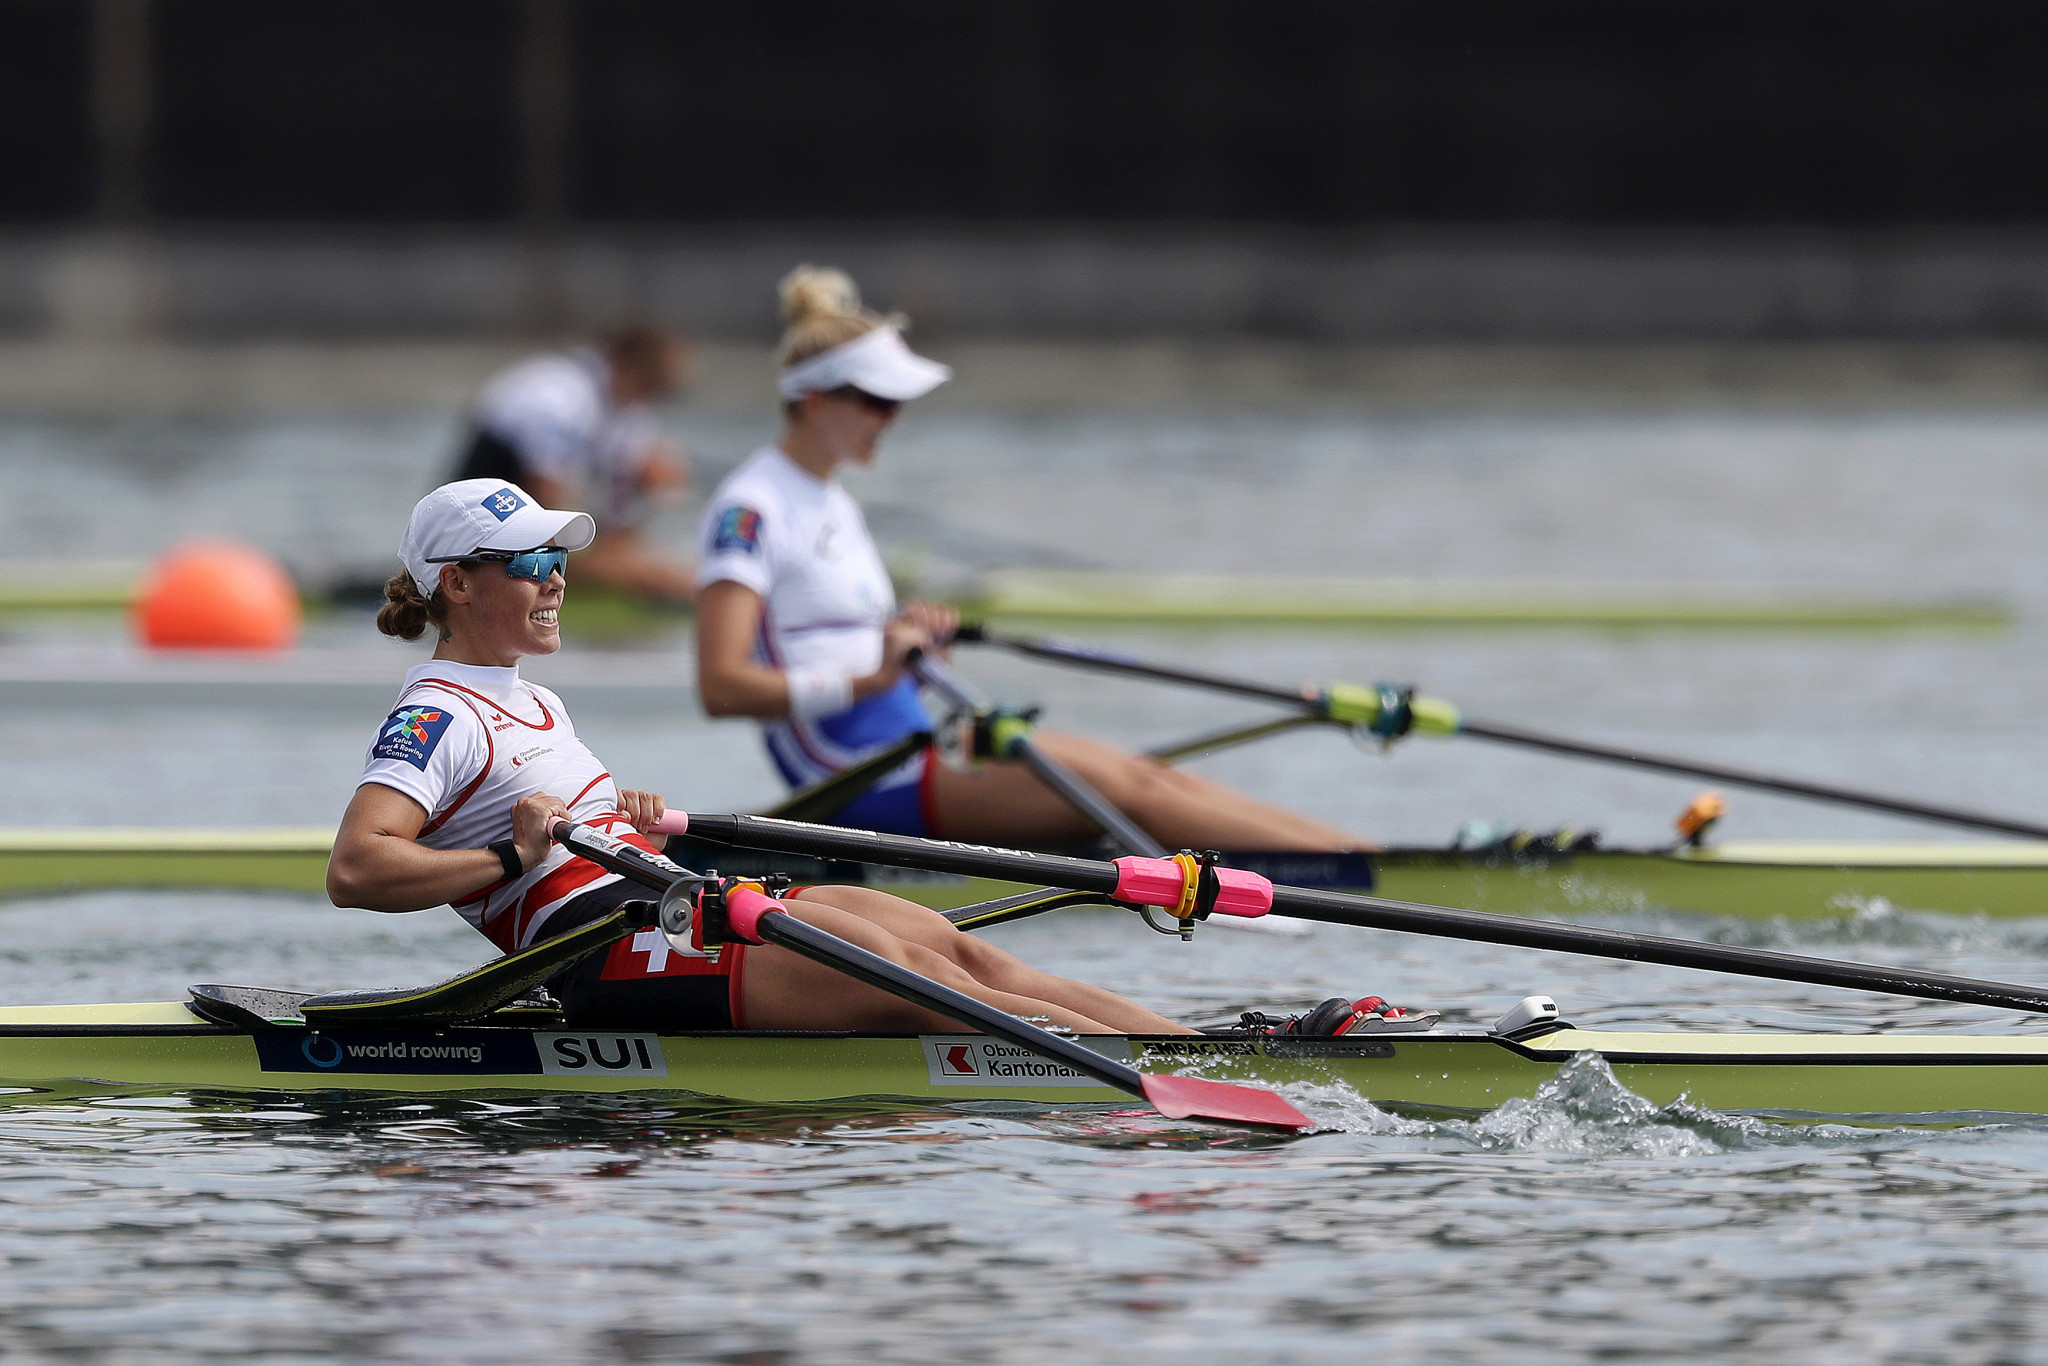 FISA is exploring the possibility of rescheduling the 2021 World Rowing Championships in Shanghai ©Getty Images